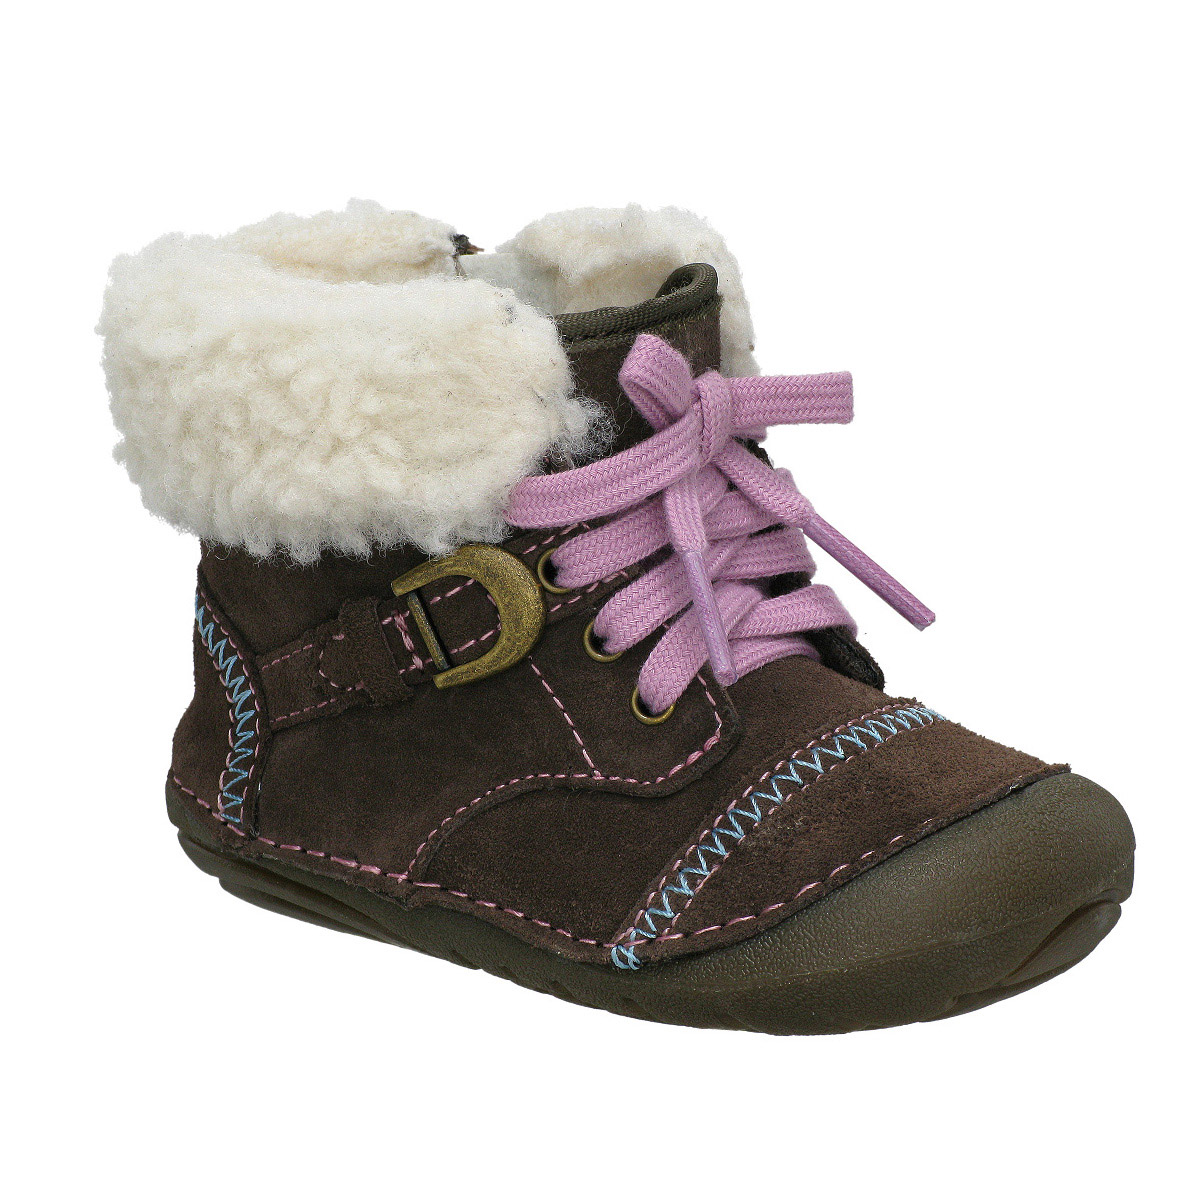 What Size Shoe Does An  Month Old Wear